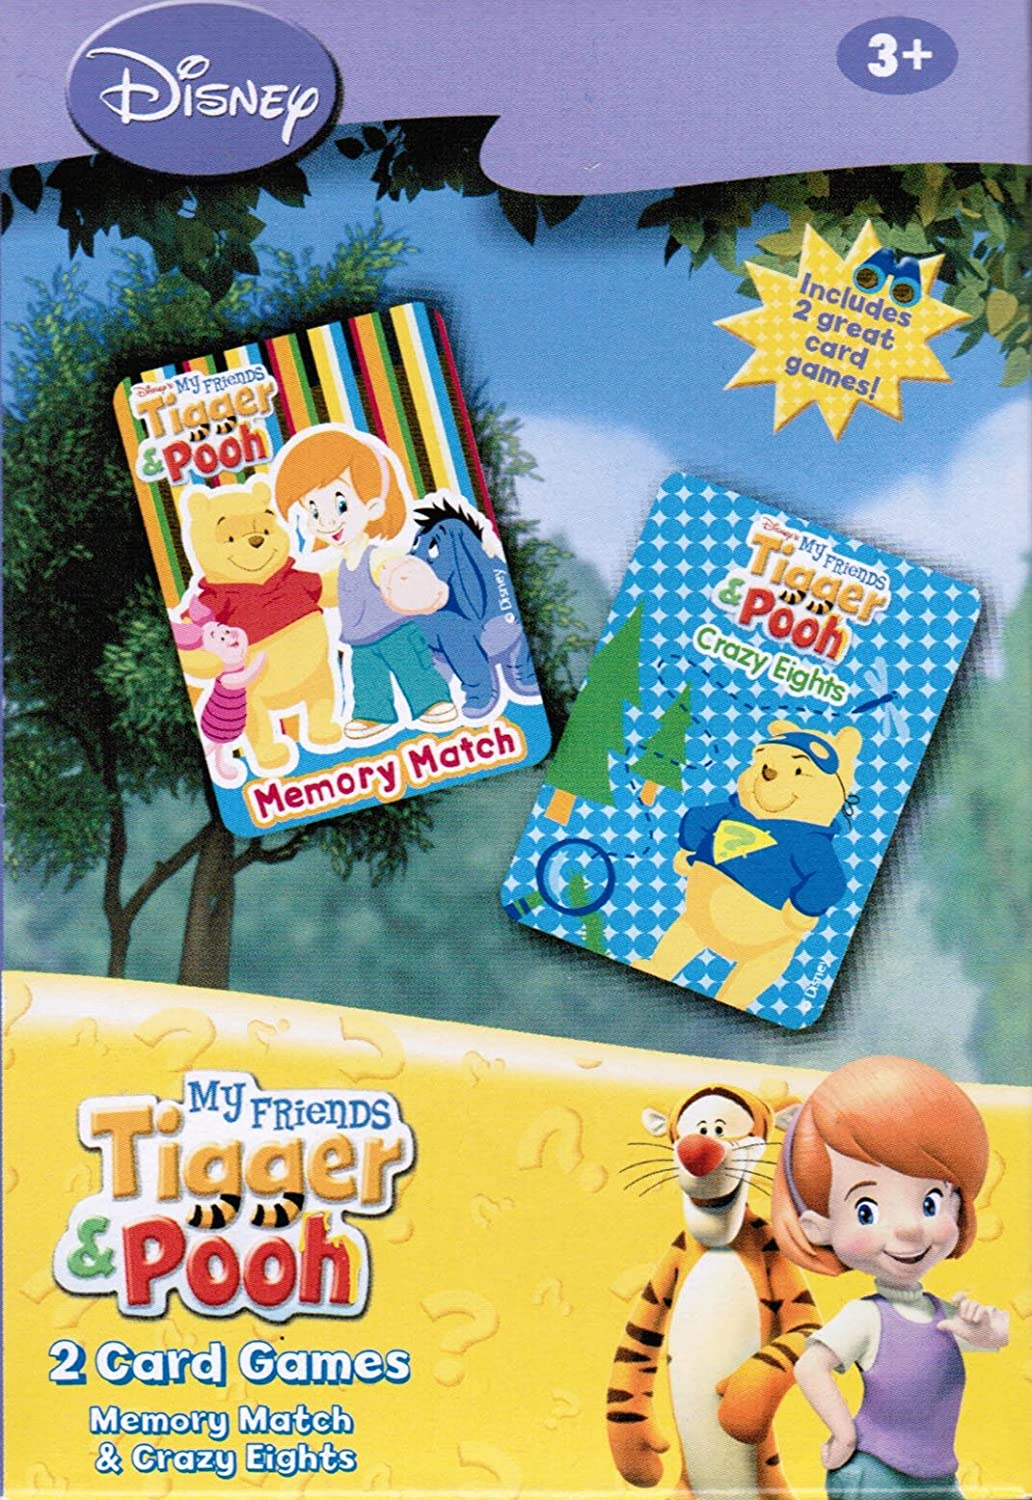 Disney My Friends Tigger & Pooh Memory Match & Crazy Eights Card Games